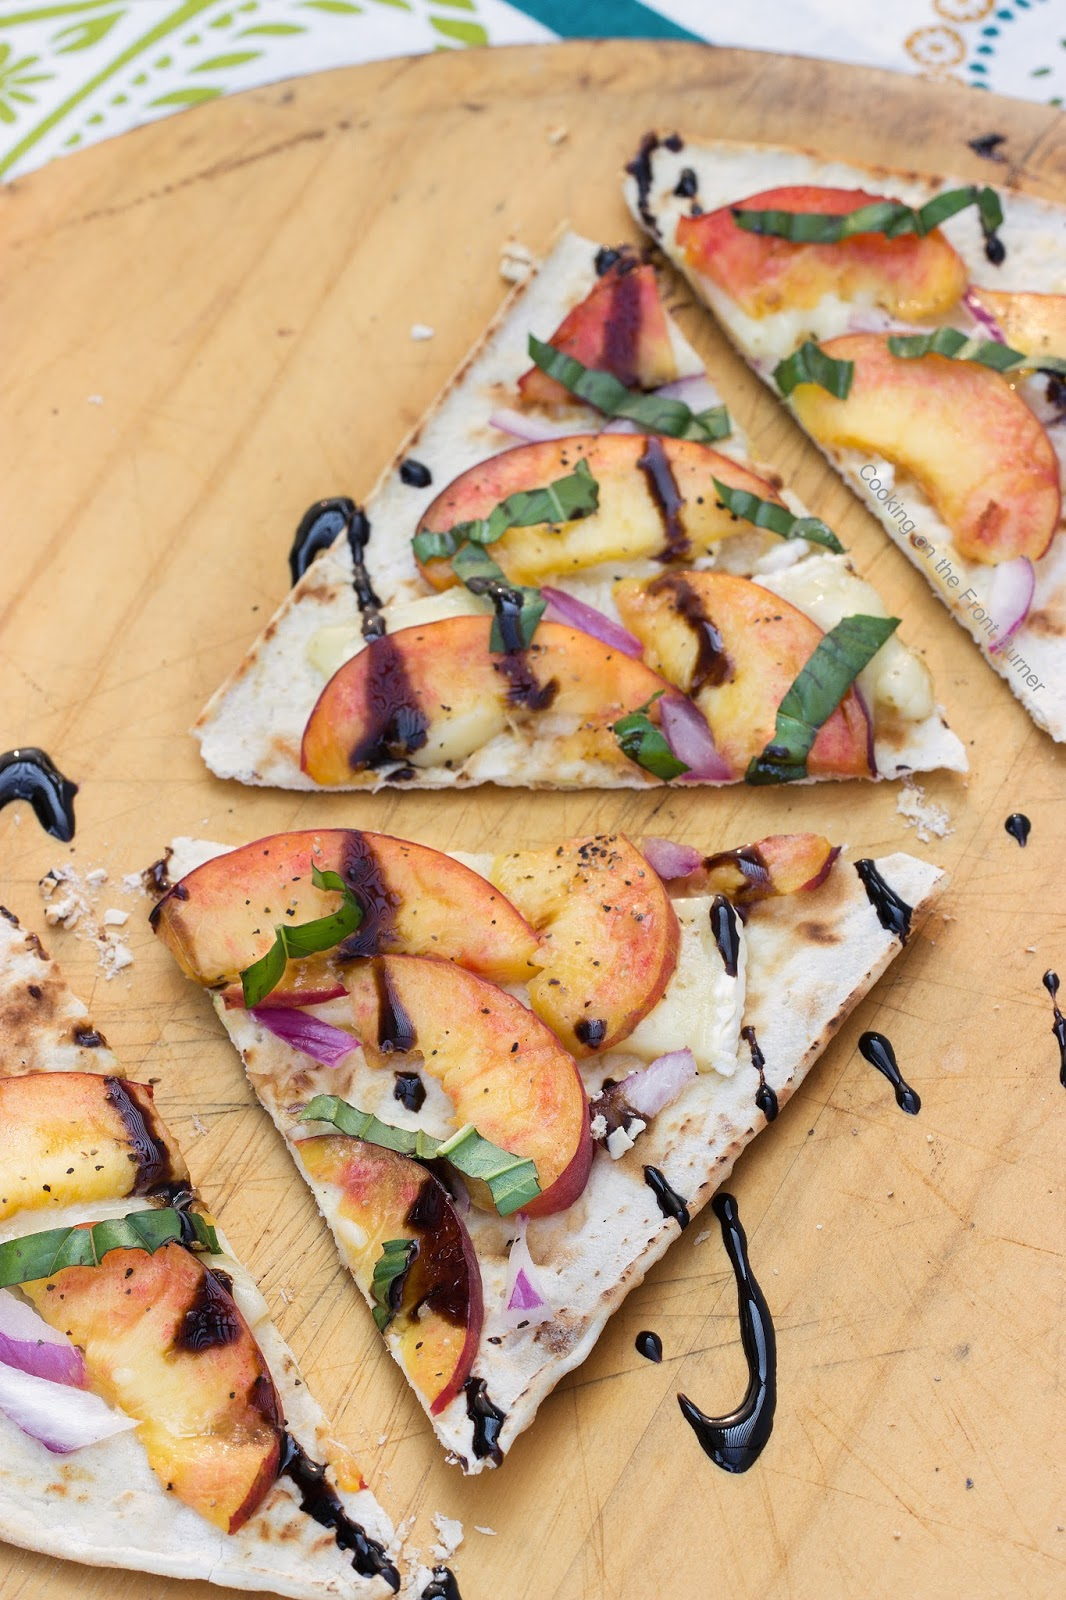 Peach and Brie Grilled Flatbread | Cooking on the Front Burner